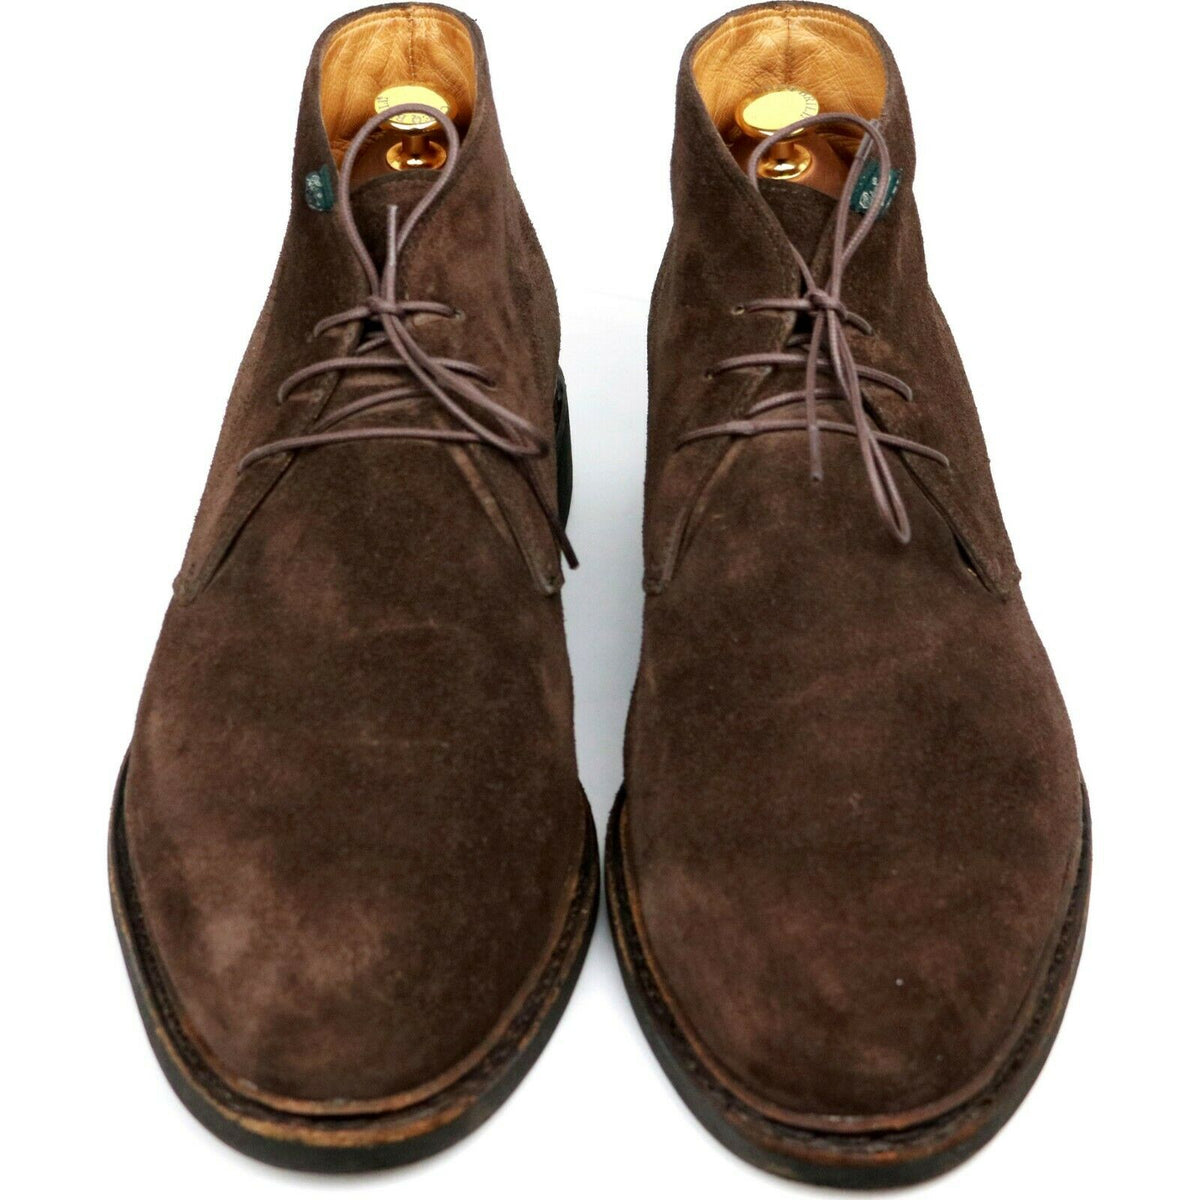 Paraboot Brown Suede Chukka Boots UK 10.5